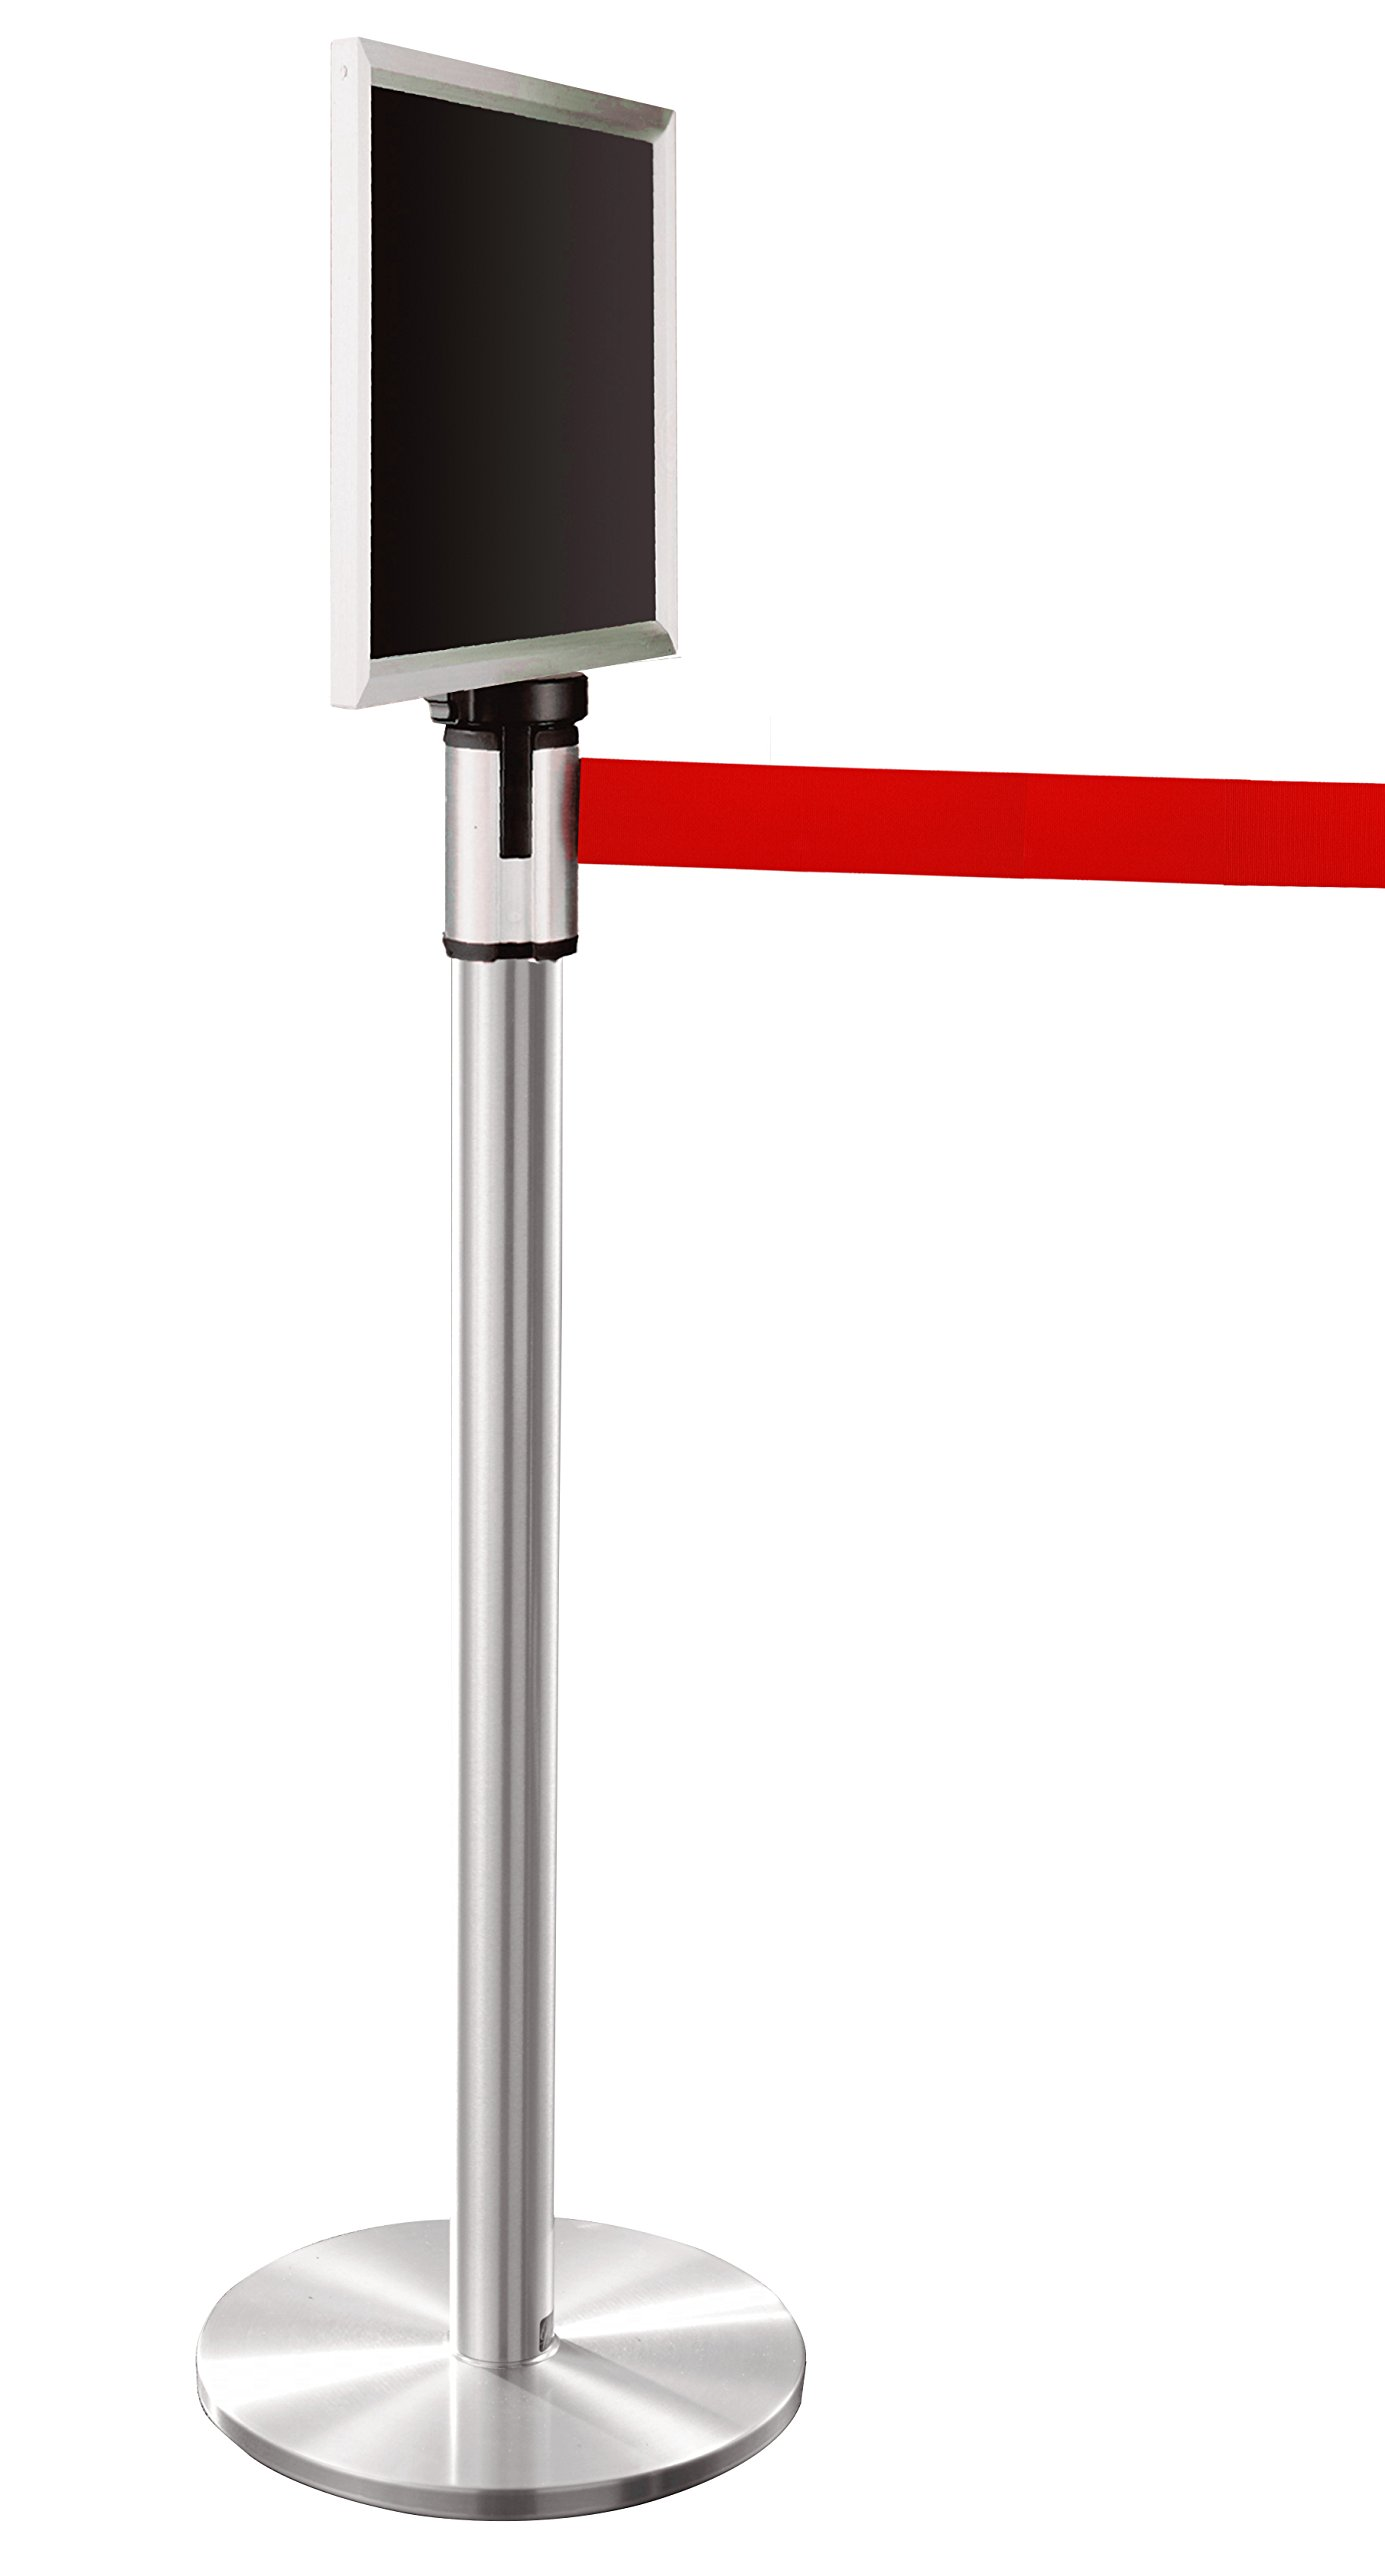 Glaro 152SA-RD-EXL1411SA 13' Retractable Belt Crowd Control Post - Satin Aluminum finish - Red Belt - Satin Aluminum Sign Frame Included by Glaro